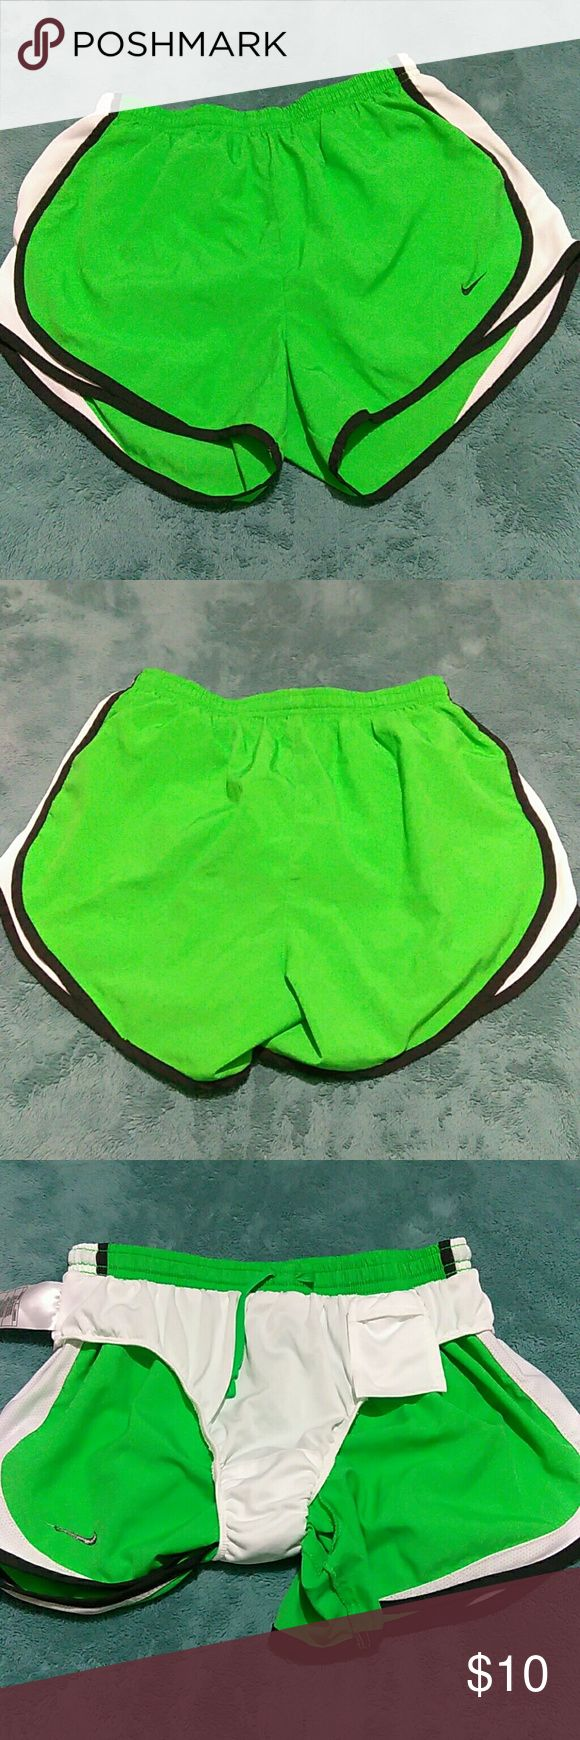 Nike Shorts Nike fit dry shorts size small(4-6),with little pocket on inside in front with adjustable drawstring,lime green with black and white on sides ,from waist to bottom measures about 13inches long Nike Shorts